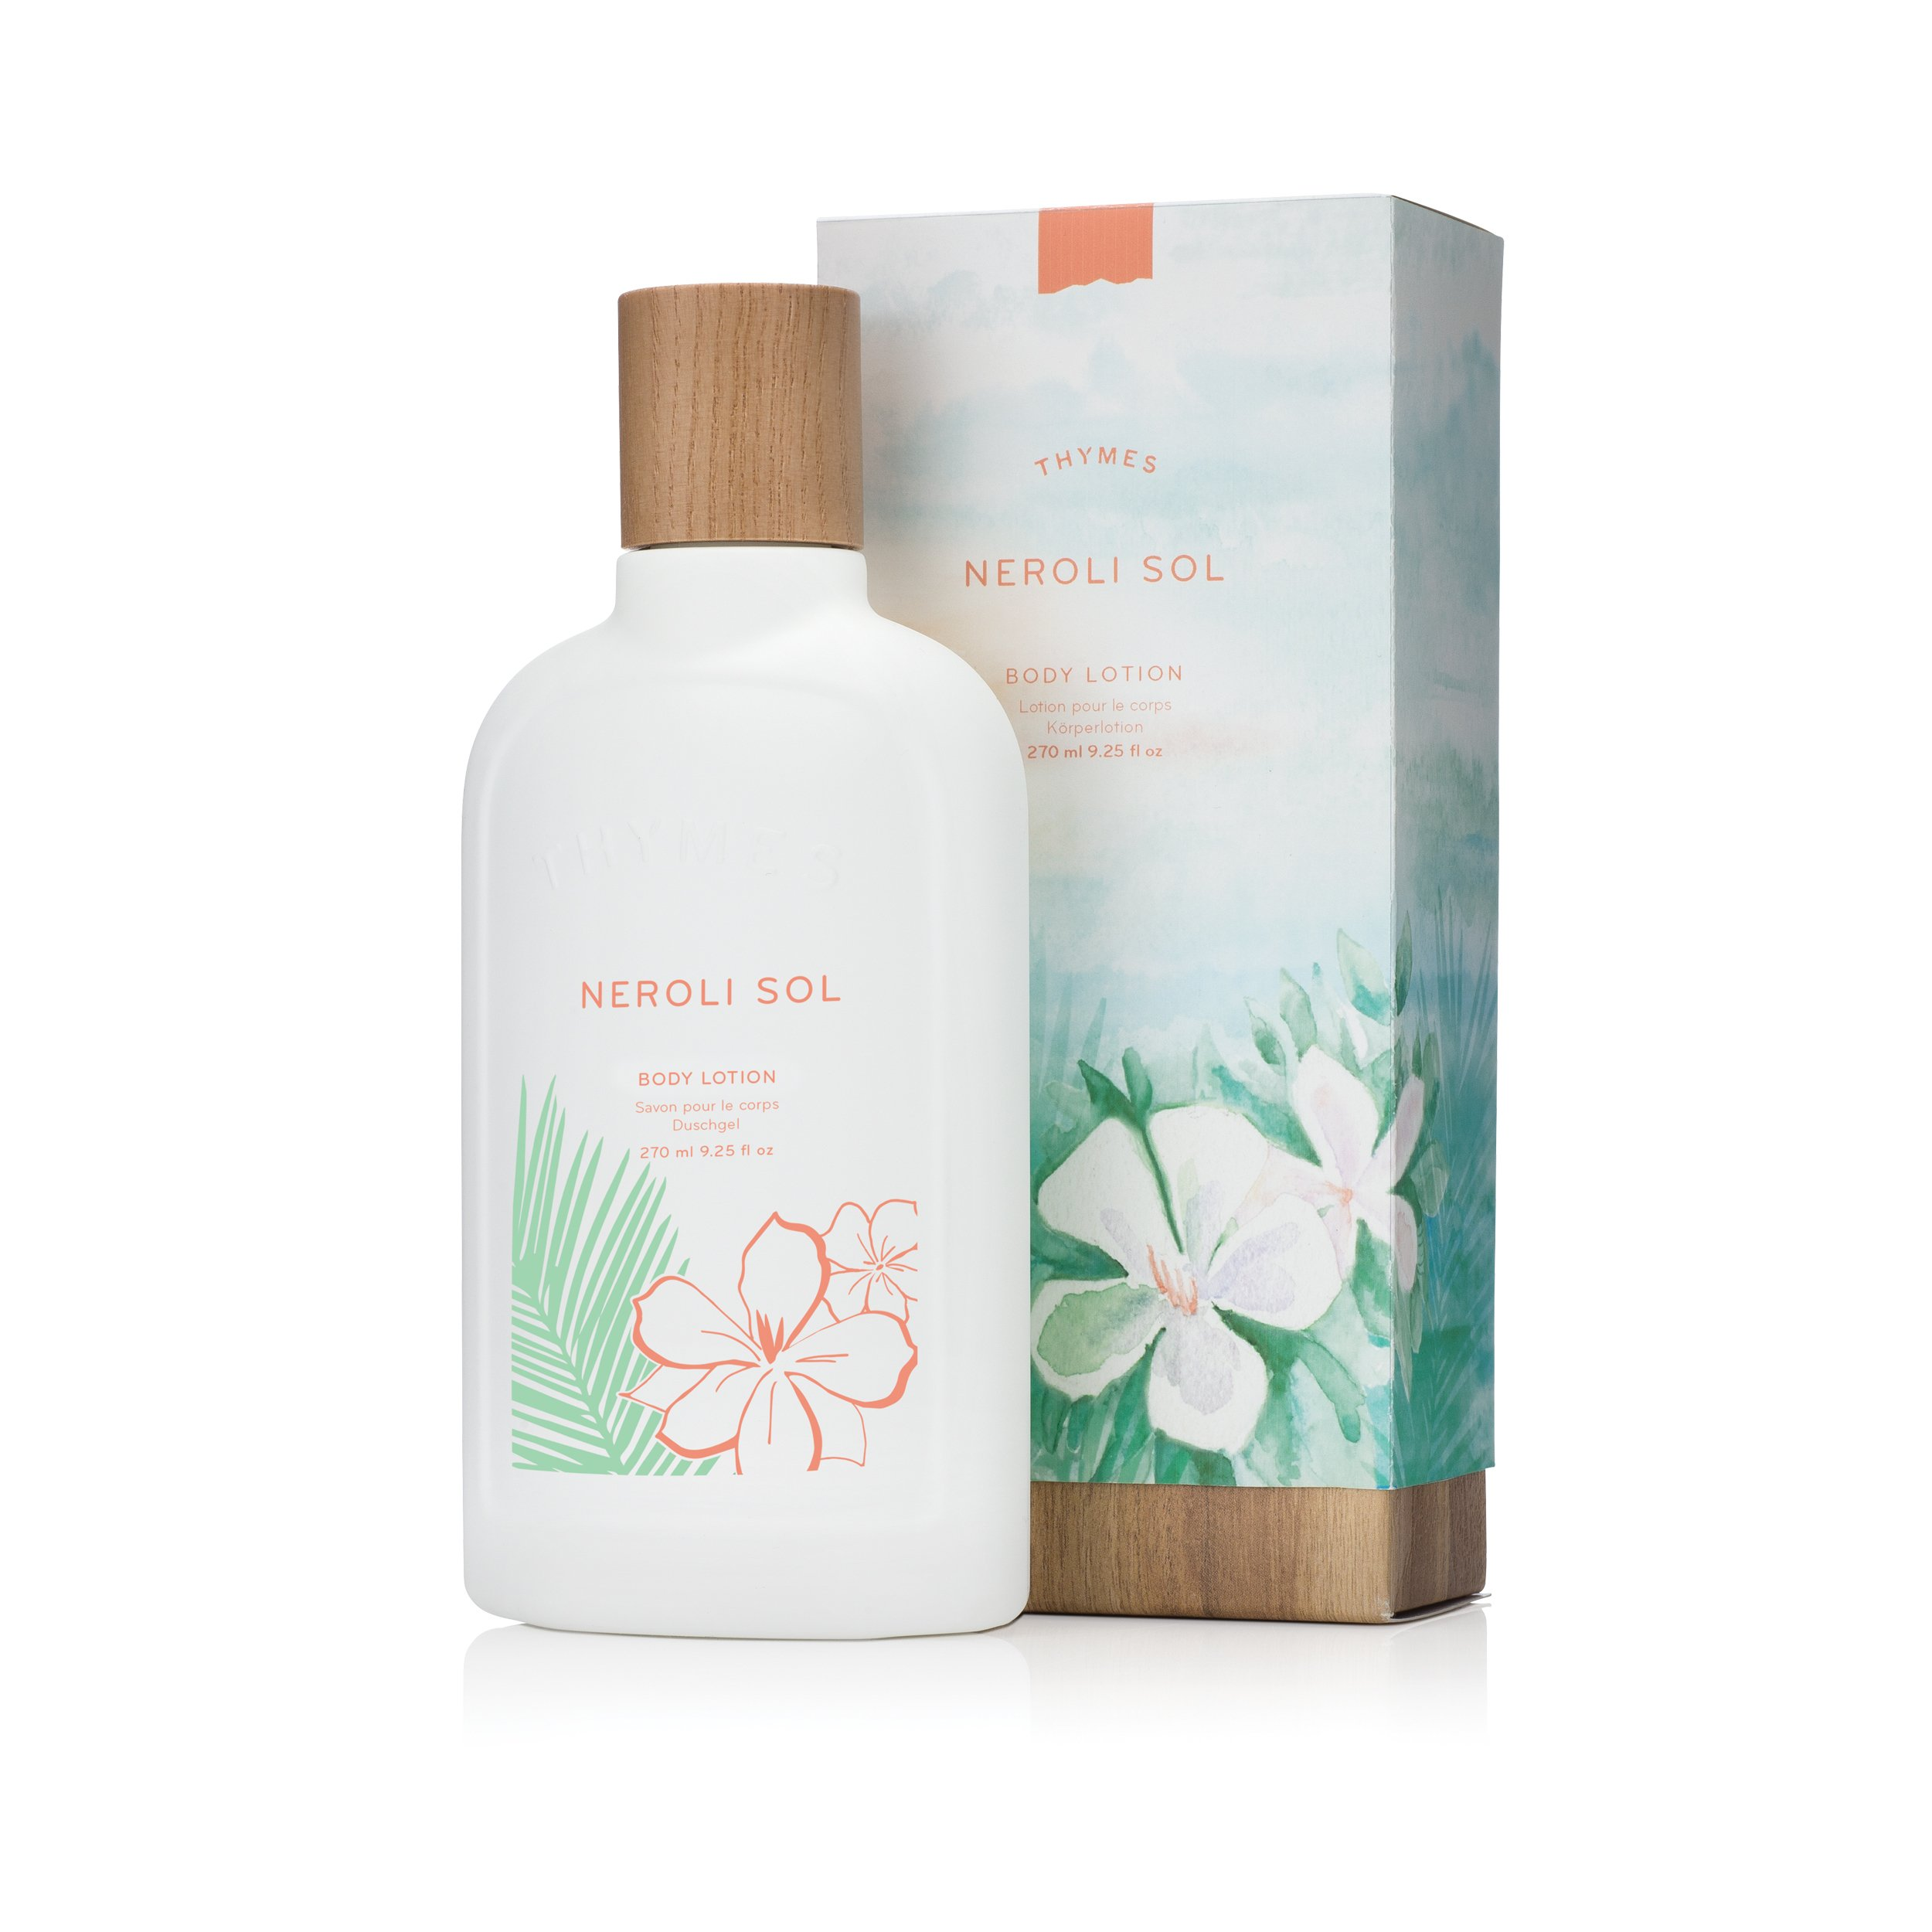 Thymes - Neroli Sol Body Lotion - Moisturizing Lotion with Coconut Oil and Shea Butter - 9.25 oz by Thymes